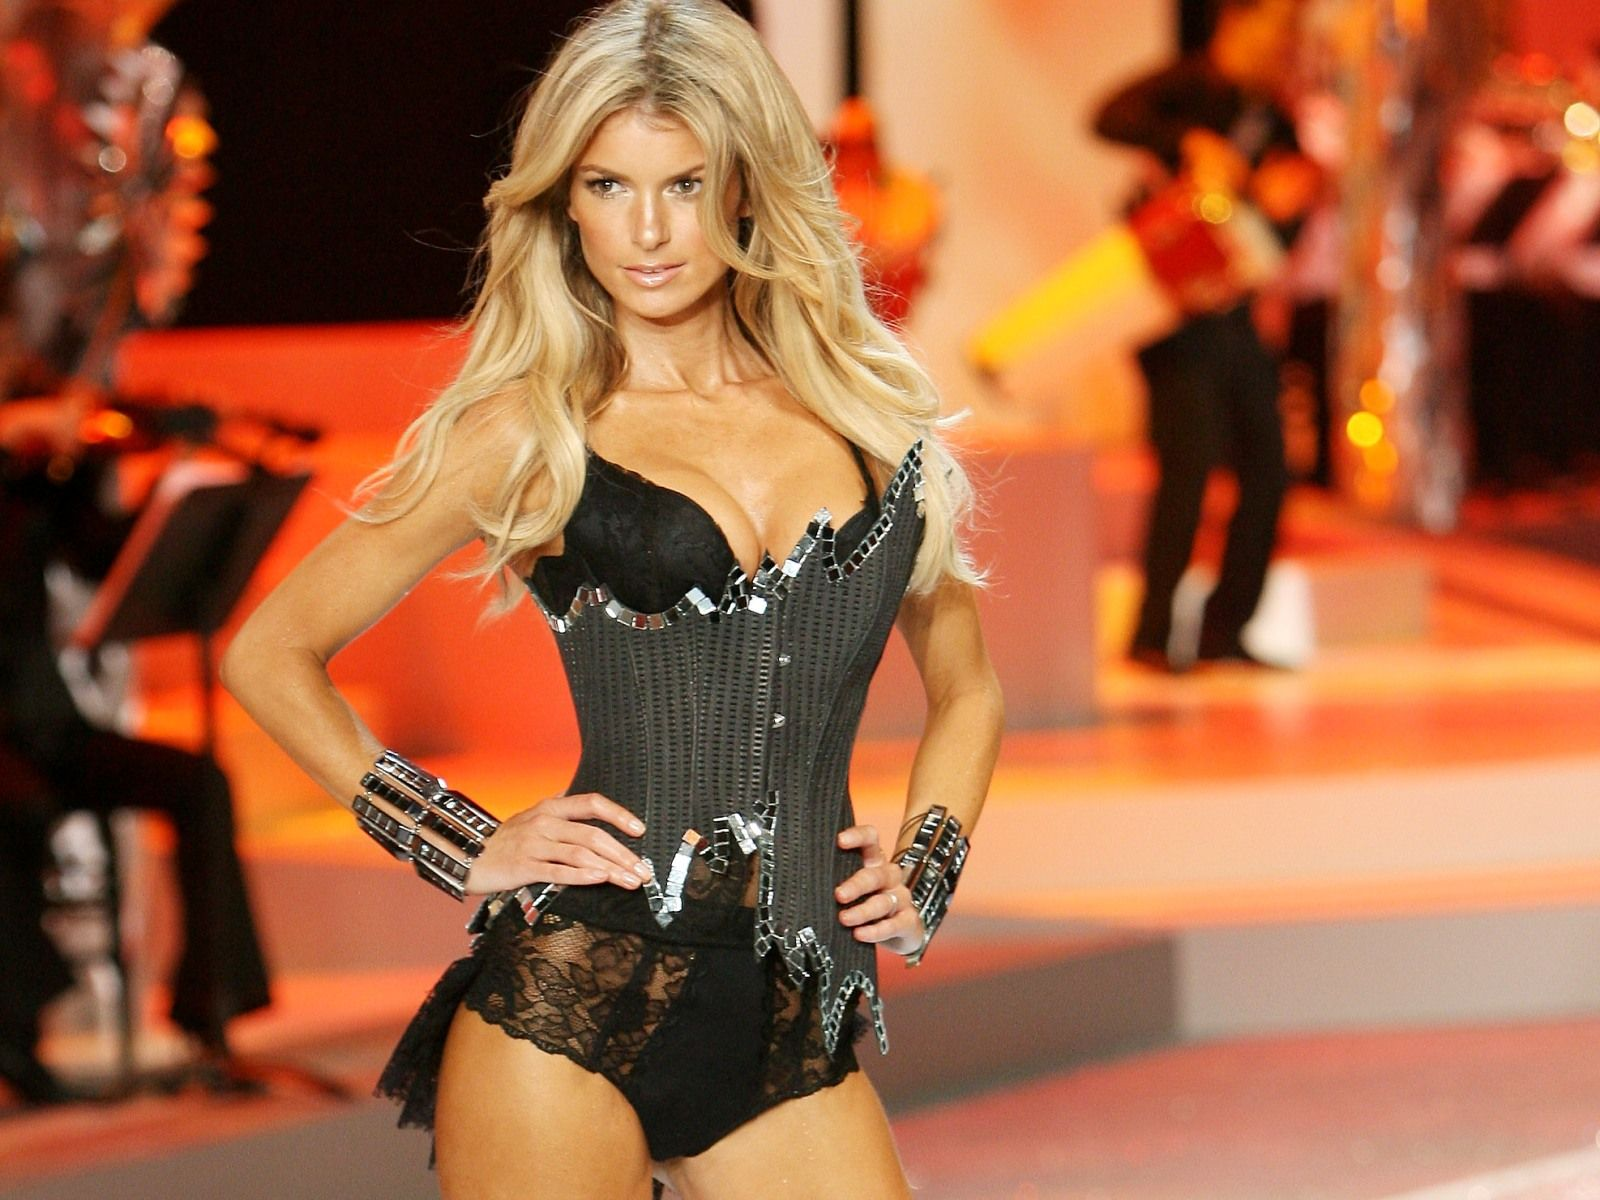 Pin by Claire Perkins on Marisa Miller | Pinterest ...